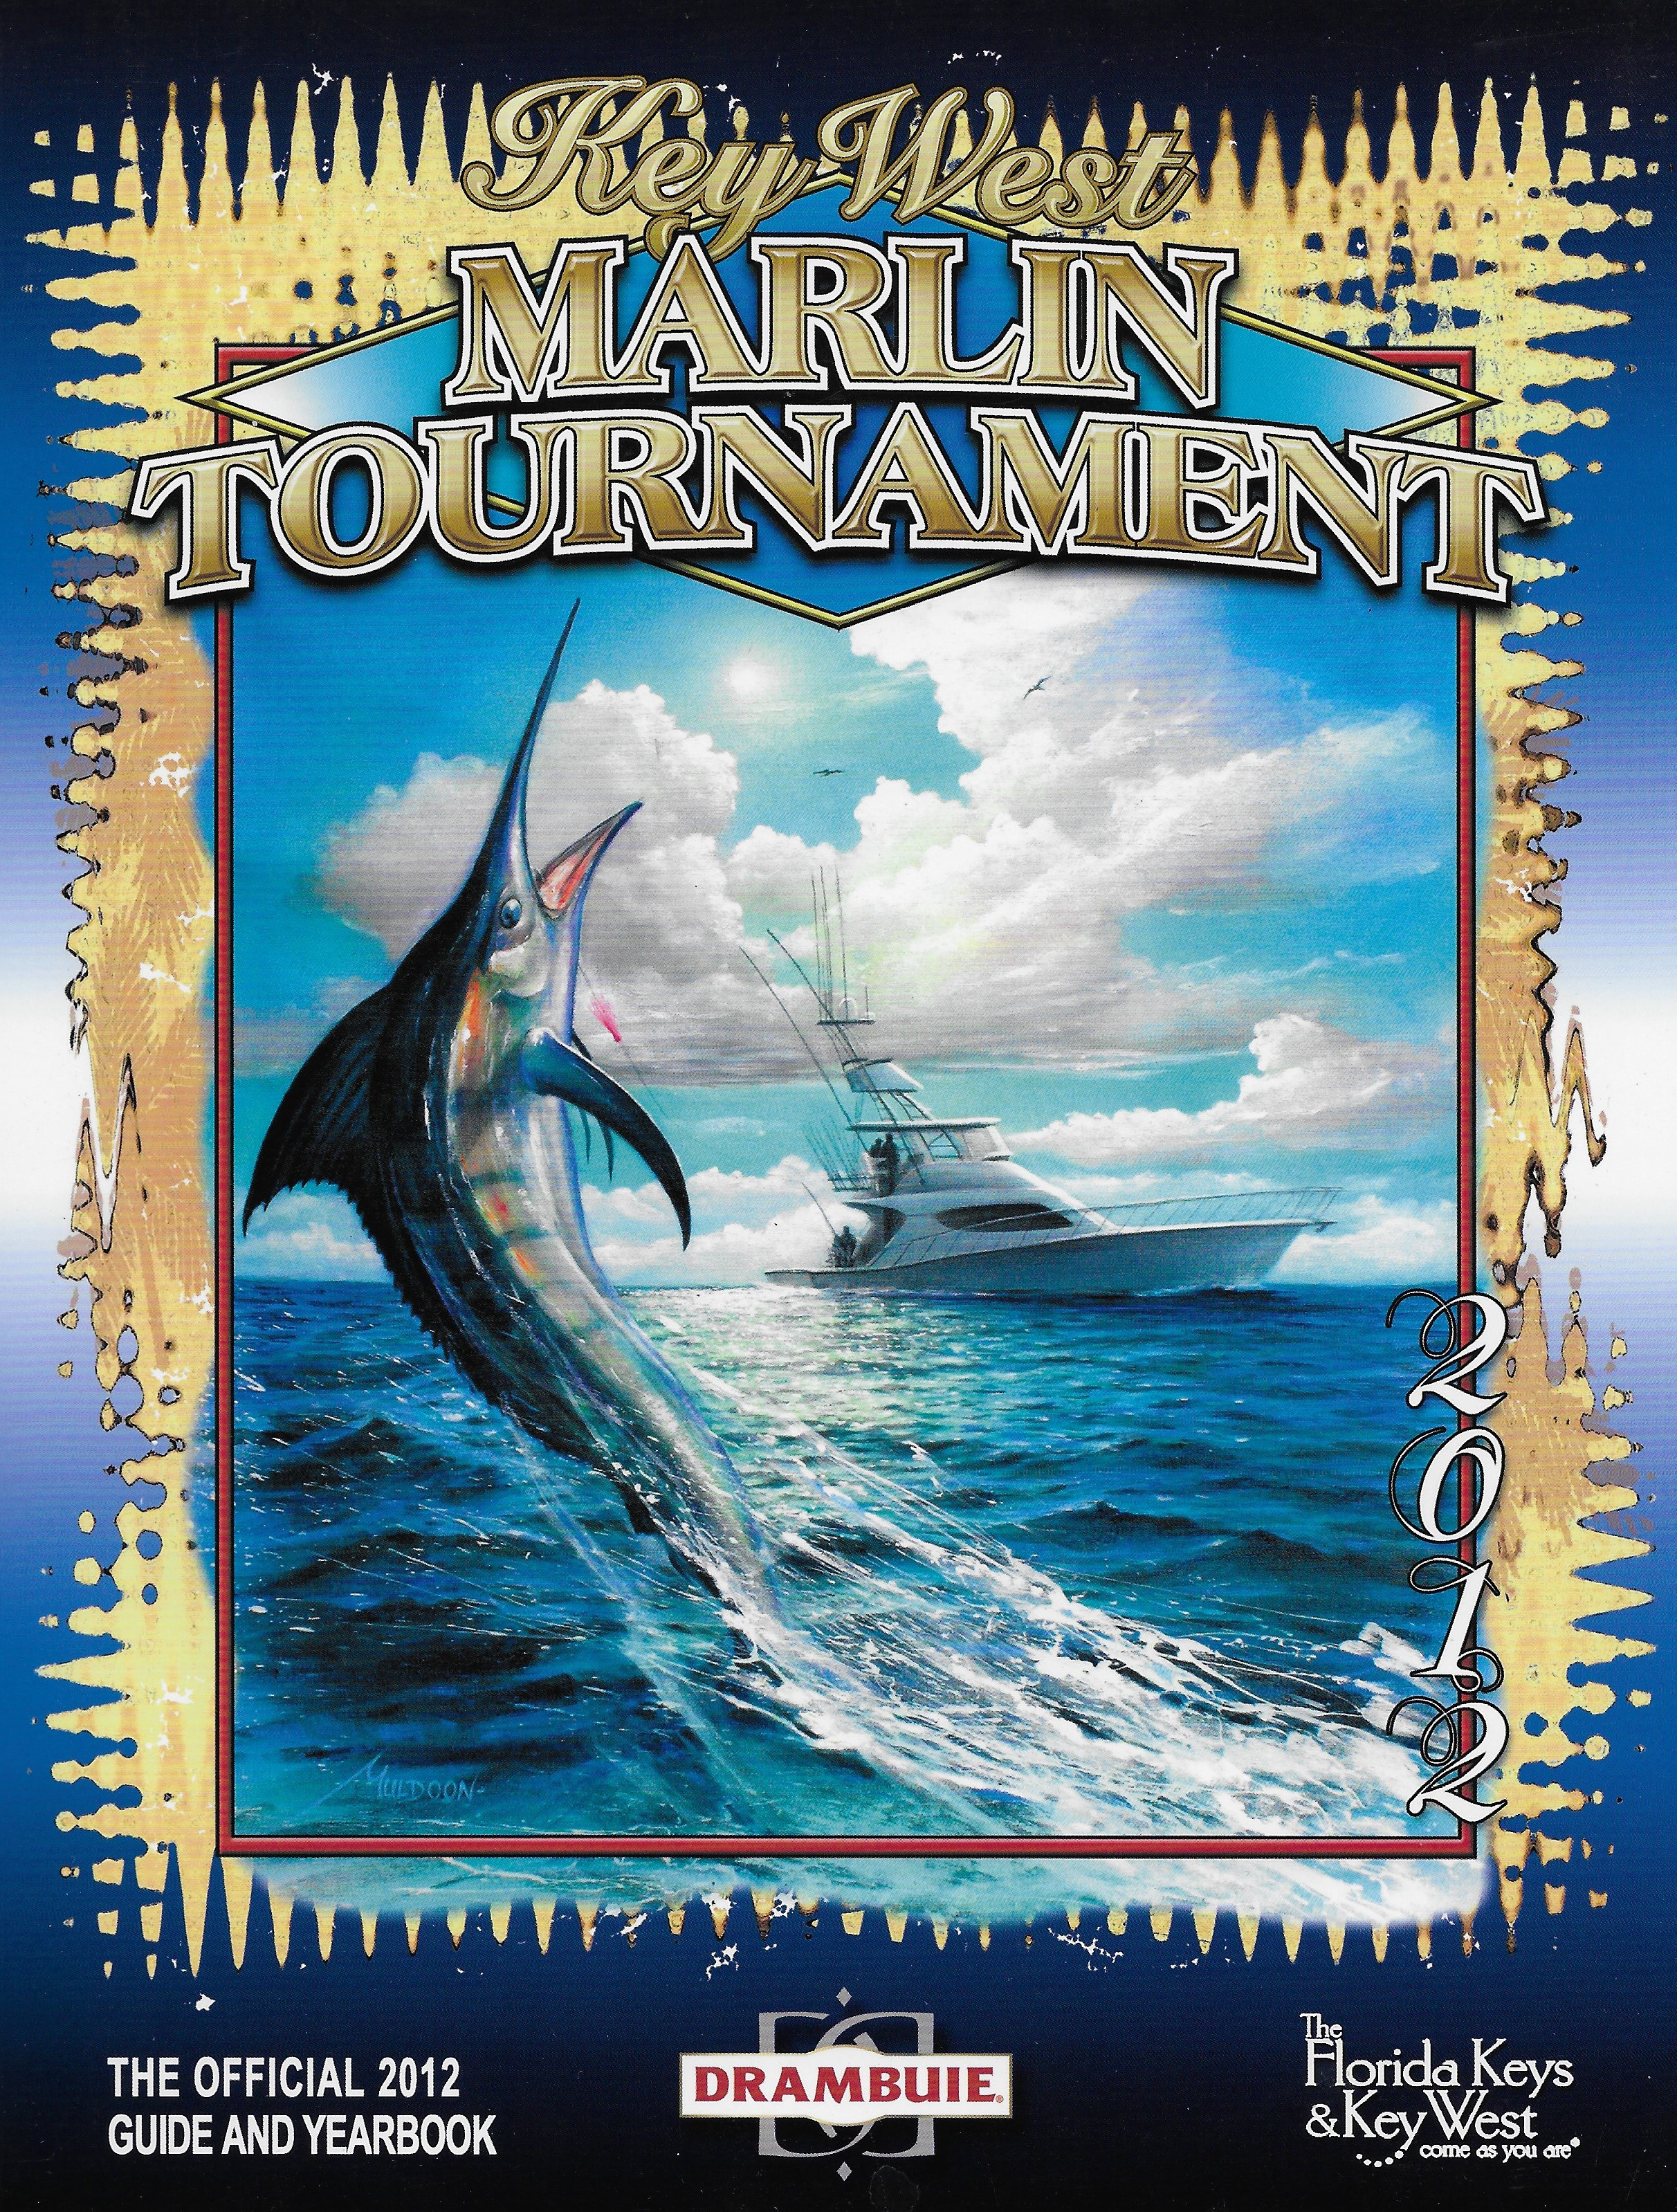 Key West Marlin Tournament 2012